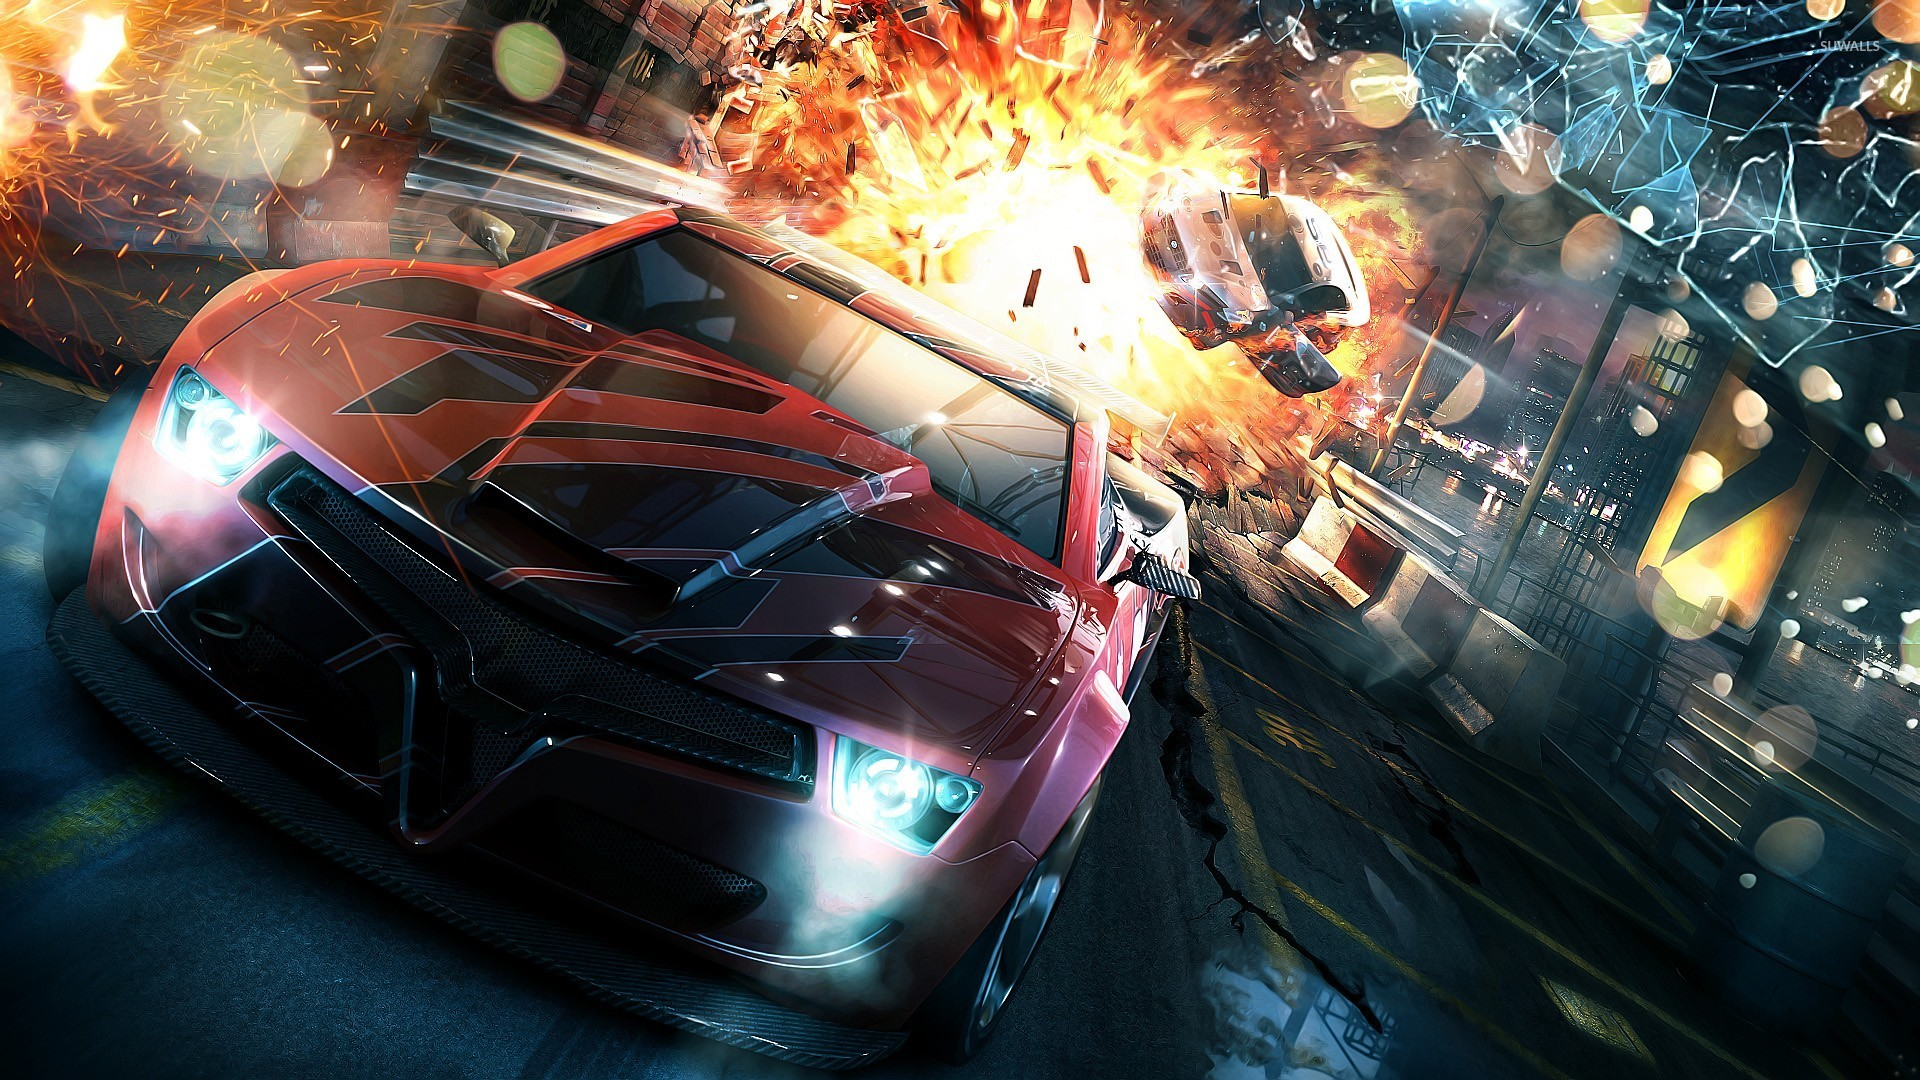 Car Gif Flip Explosion Video Game